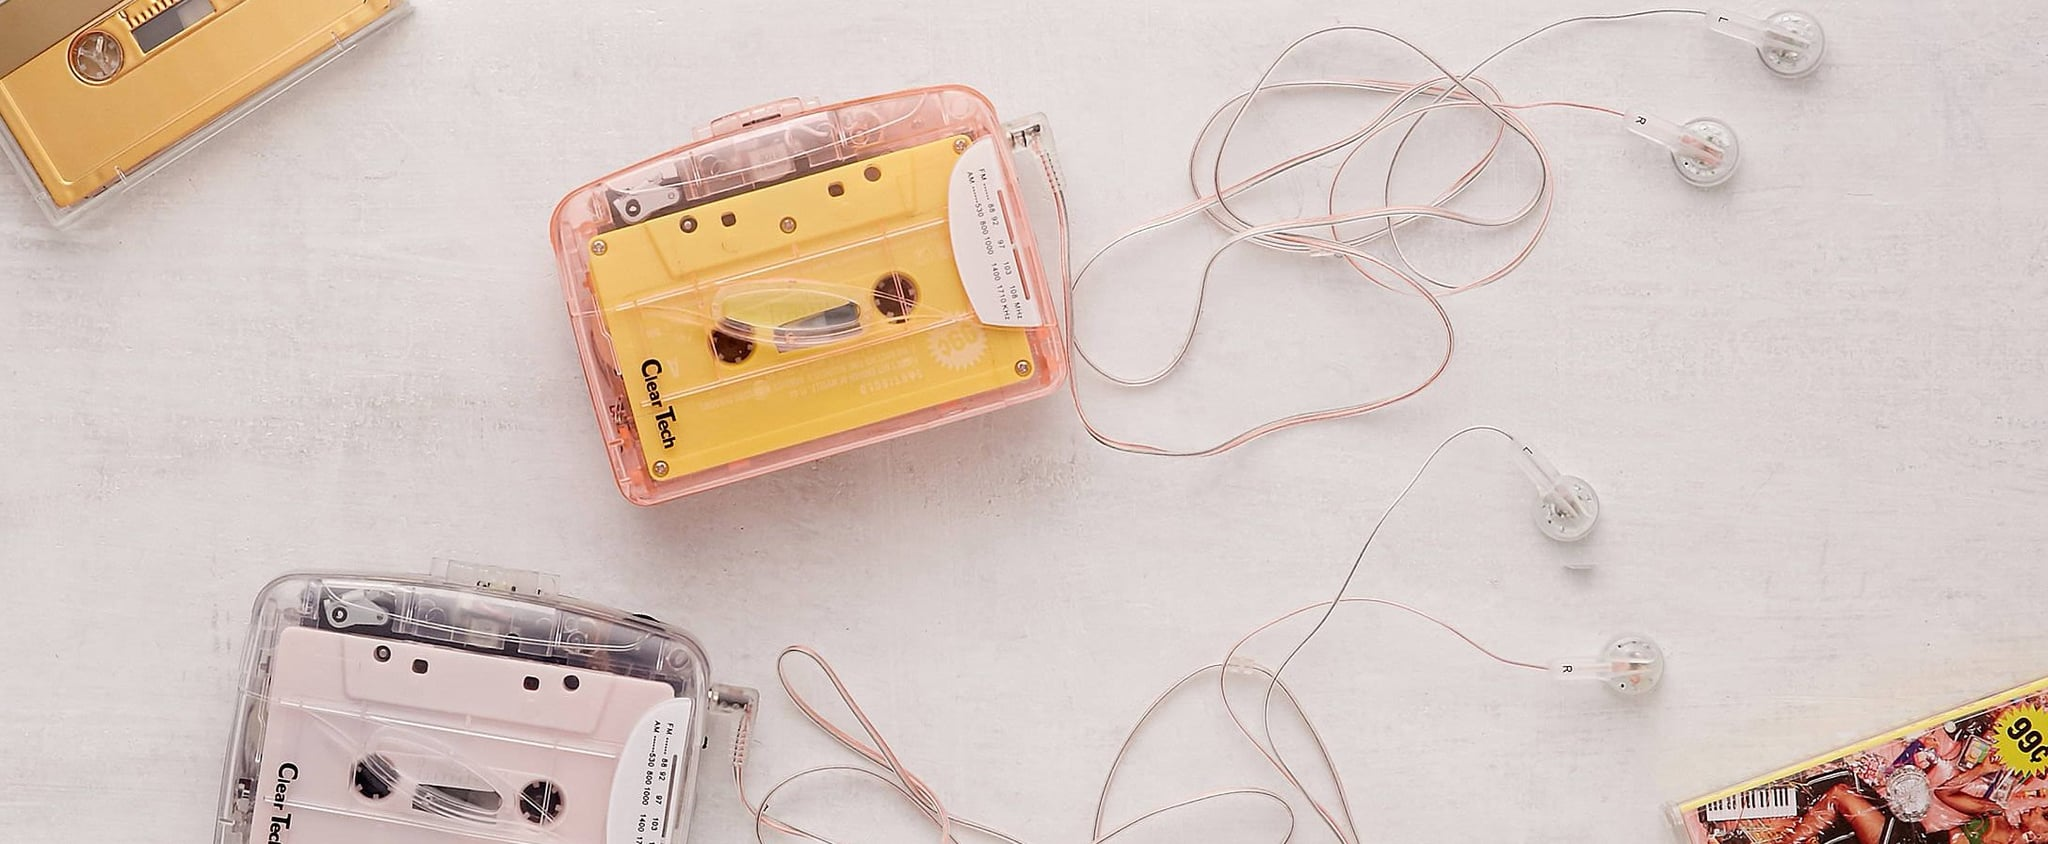 Retro Music and Tech at Urban Outfitters